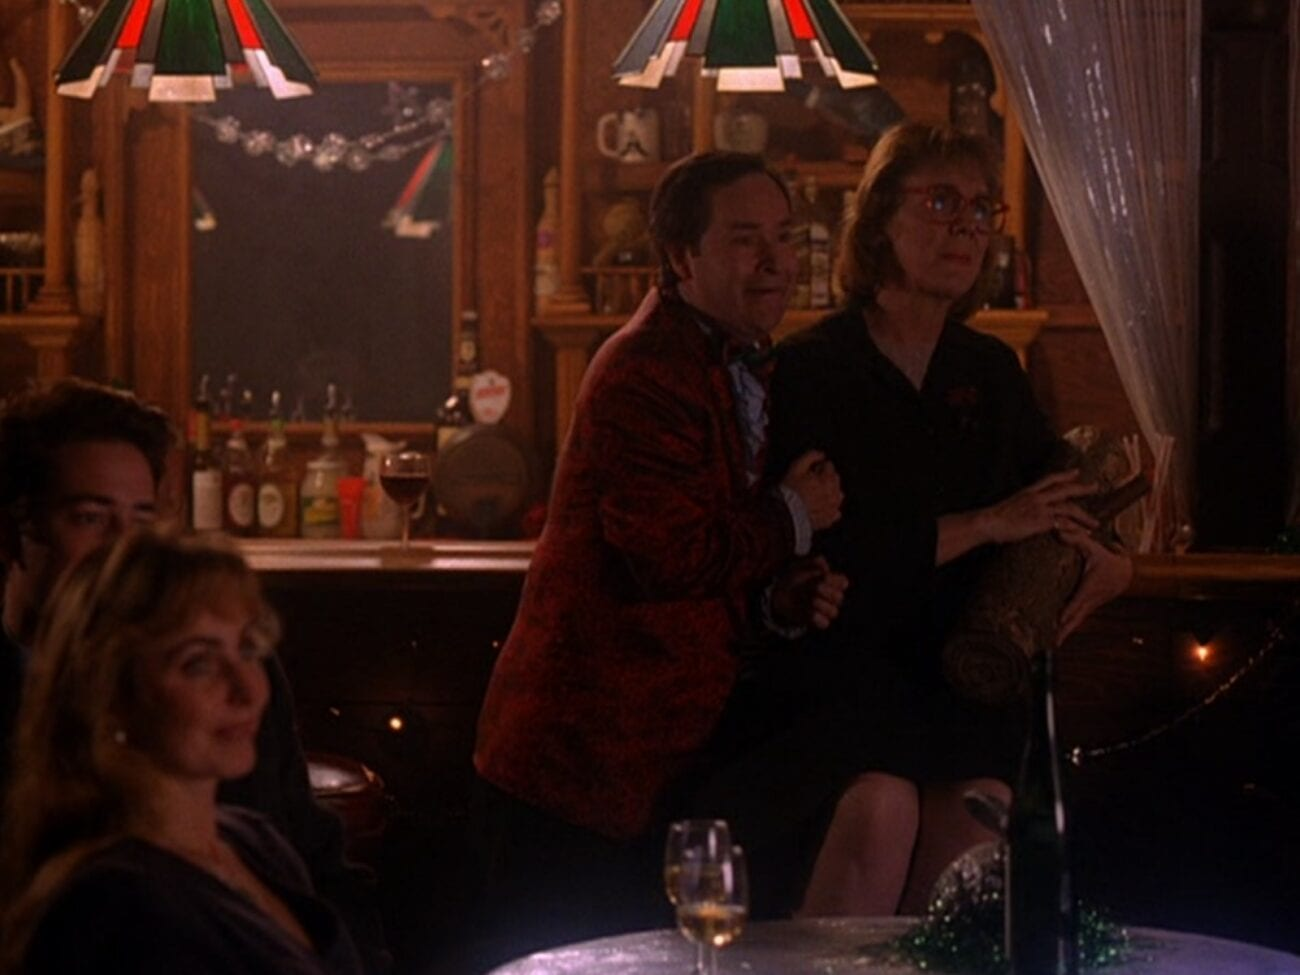 Pinkle is drunk and pawing the Log Lady at the bar